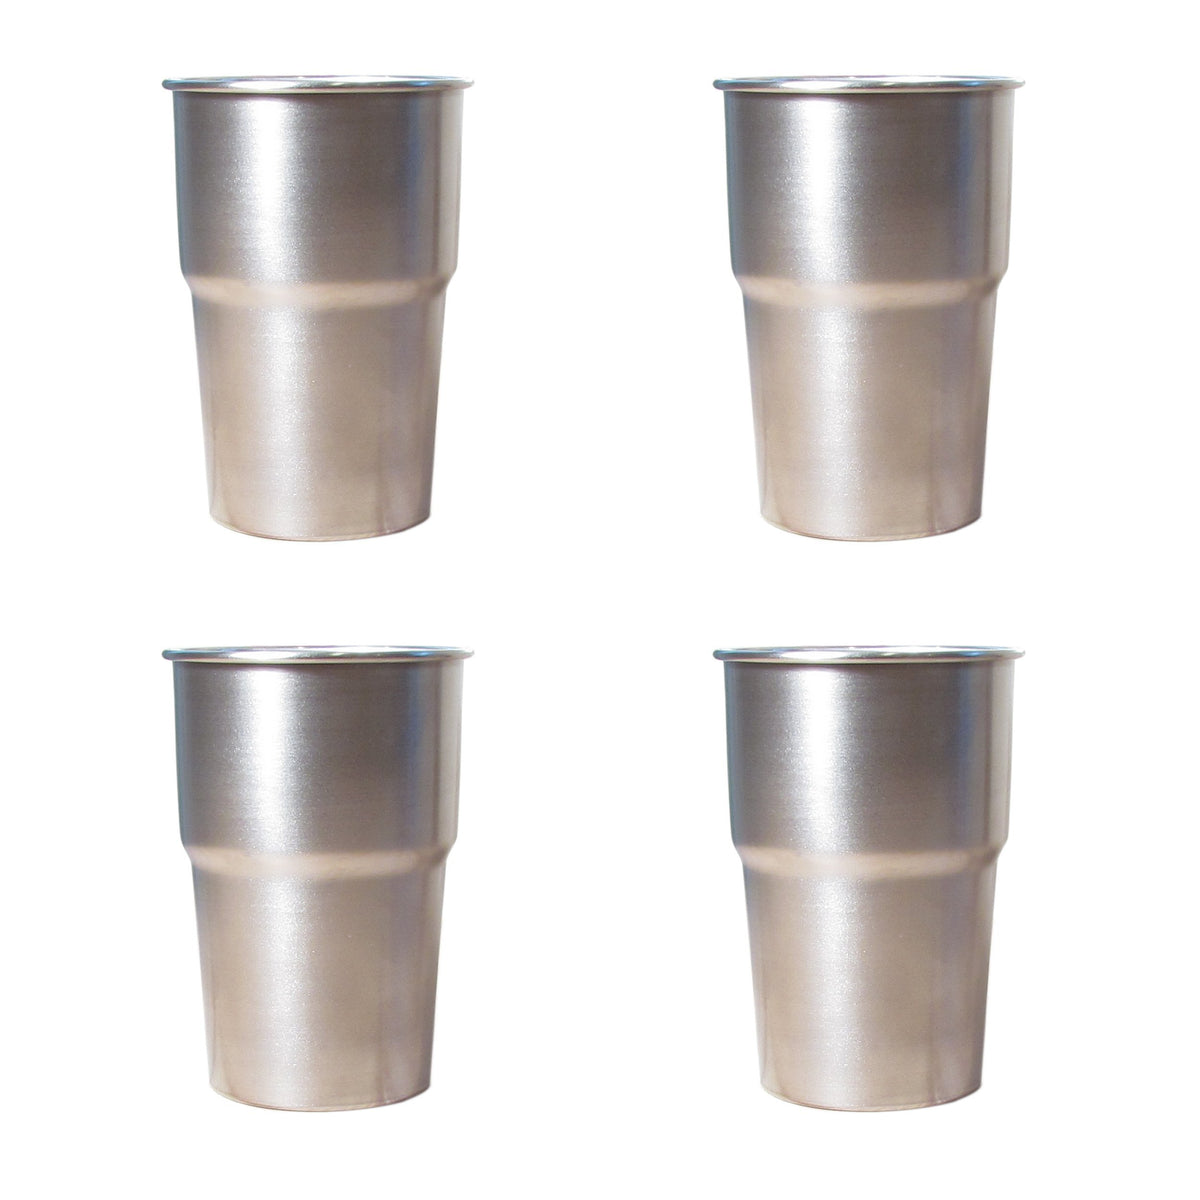 4 x Stainless Steel Pint Cups